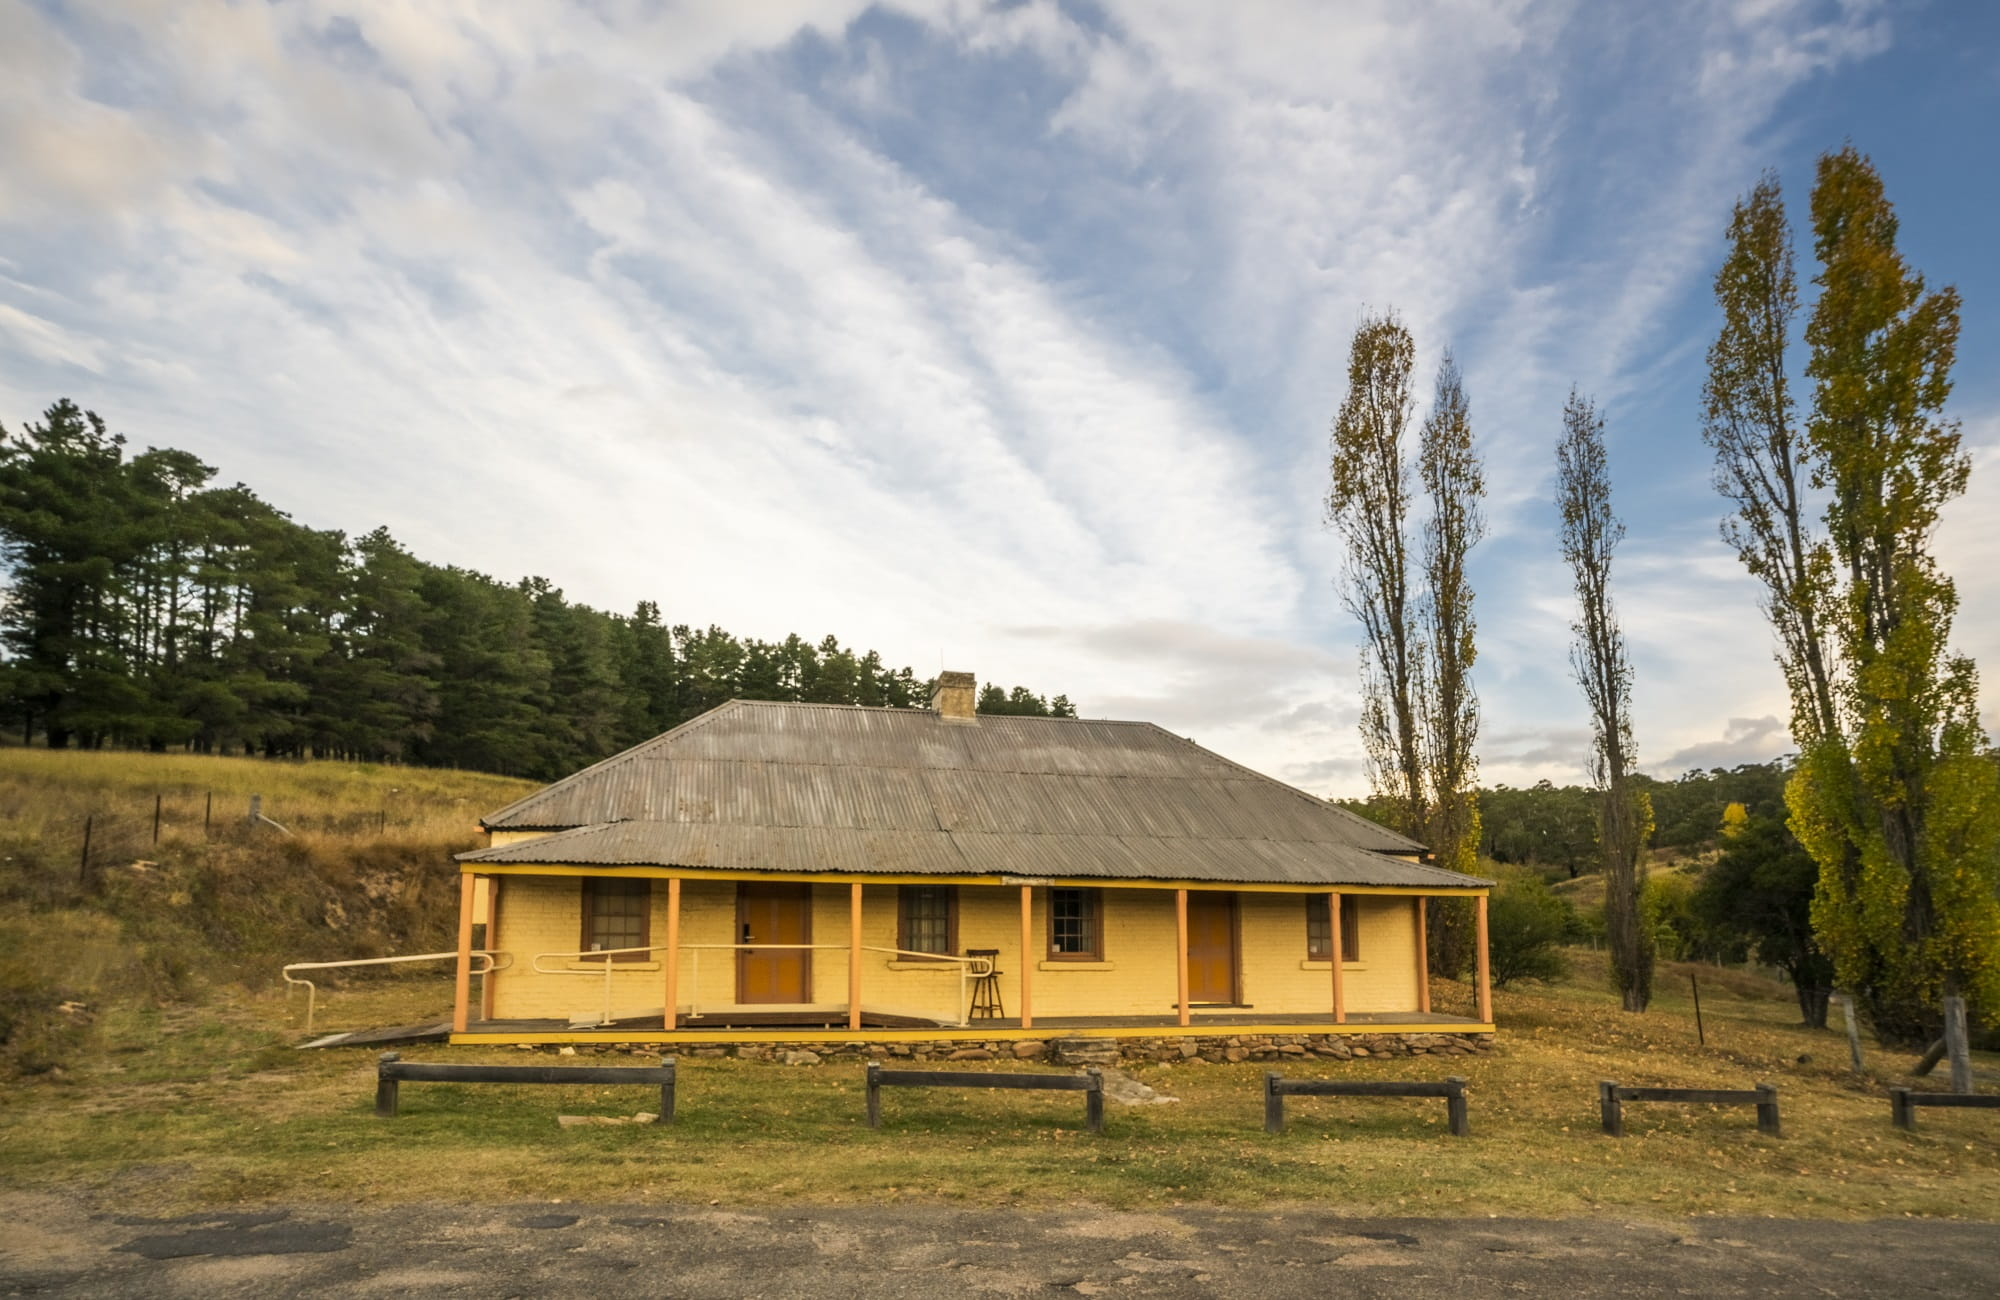 Old Trahlee, Hartley Historic Site. Photo: John Spencer/OEH